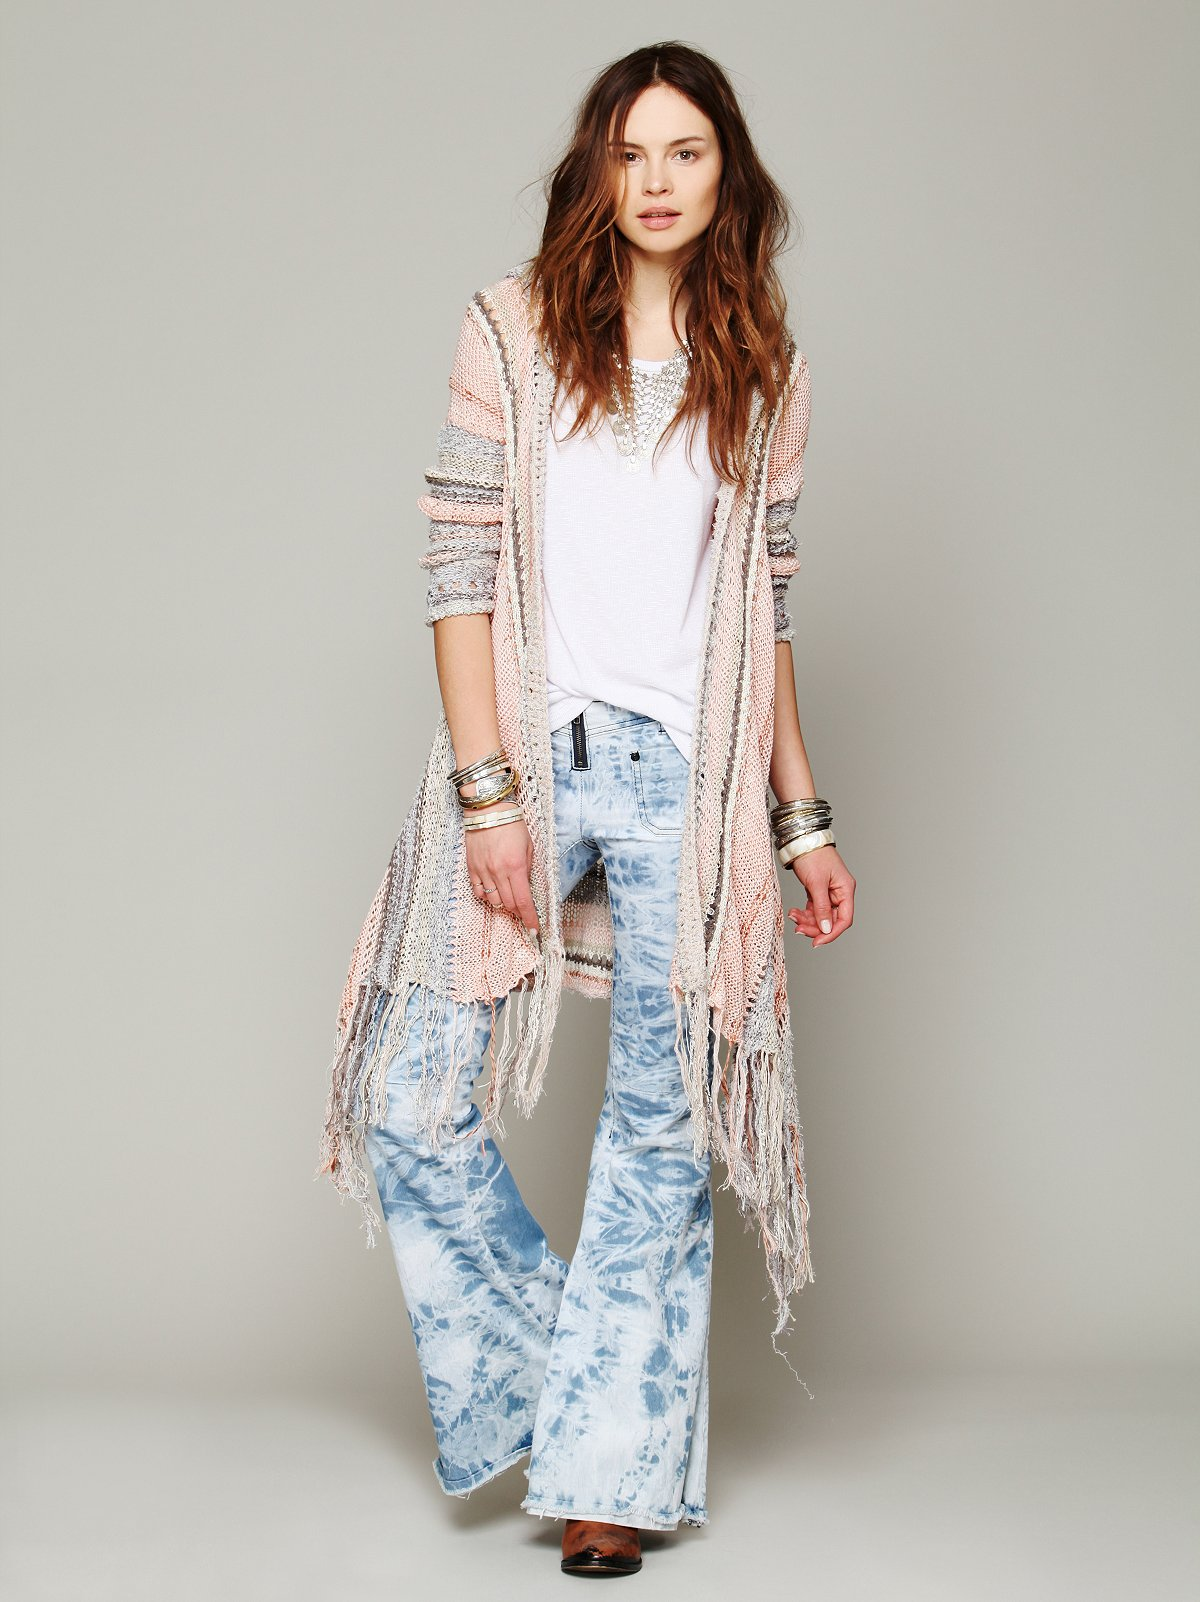 Act of Love Hooded Cardigan